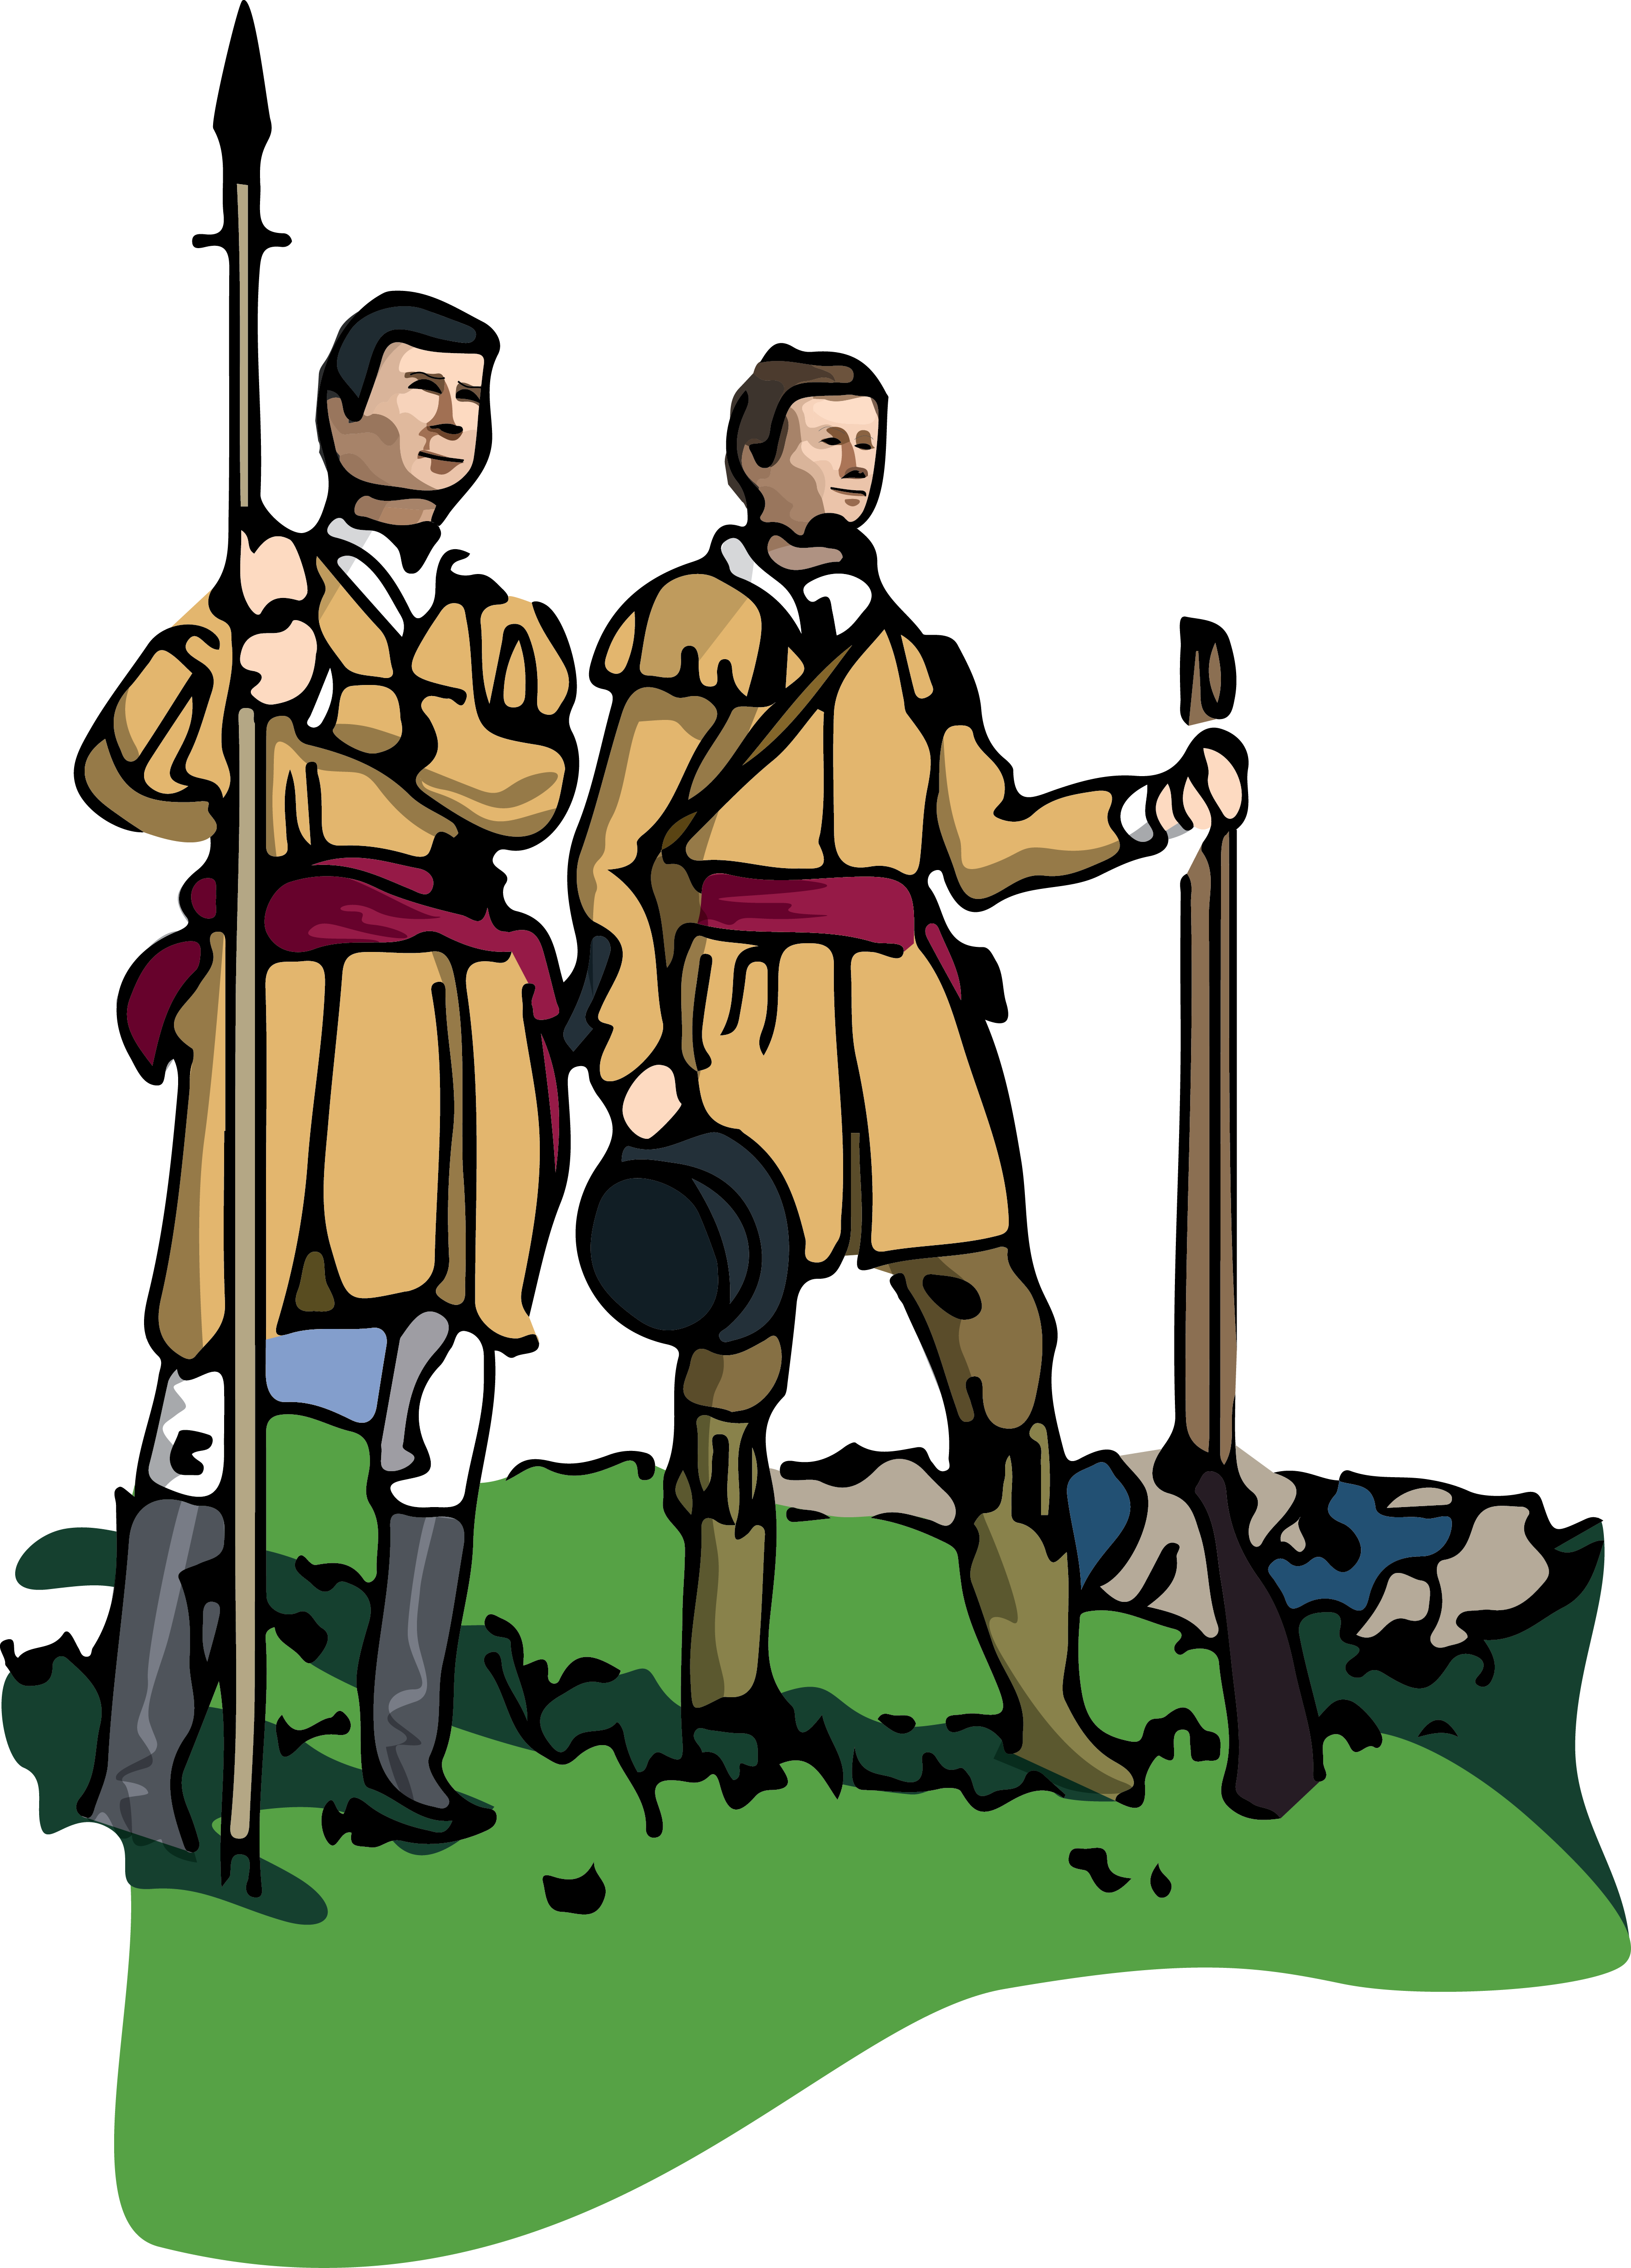 lewis and clark clipart at getdrawings com free for personal use rh getdrawings com